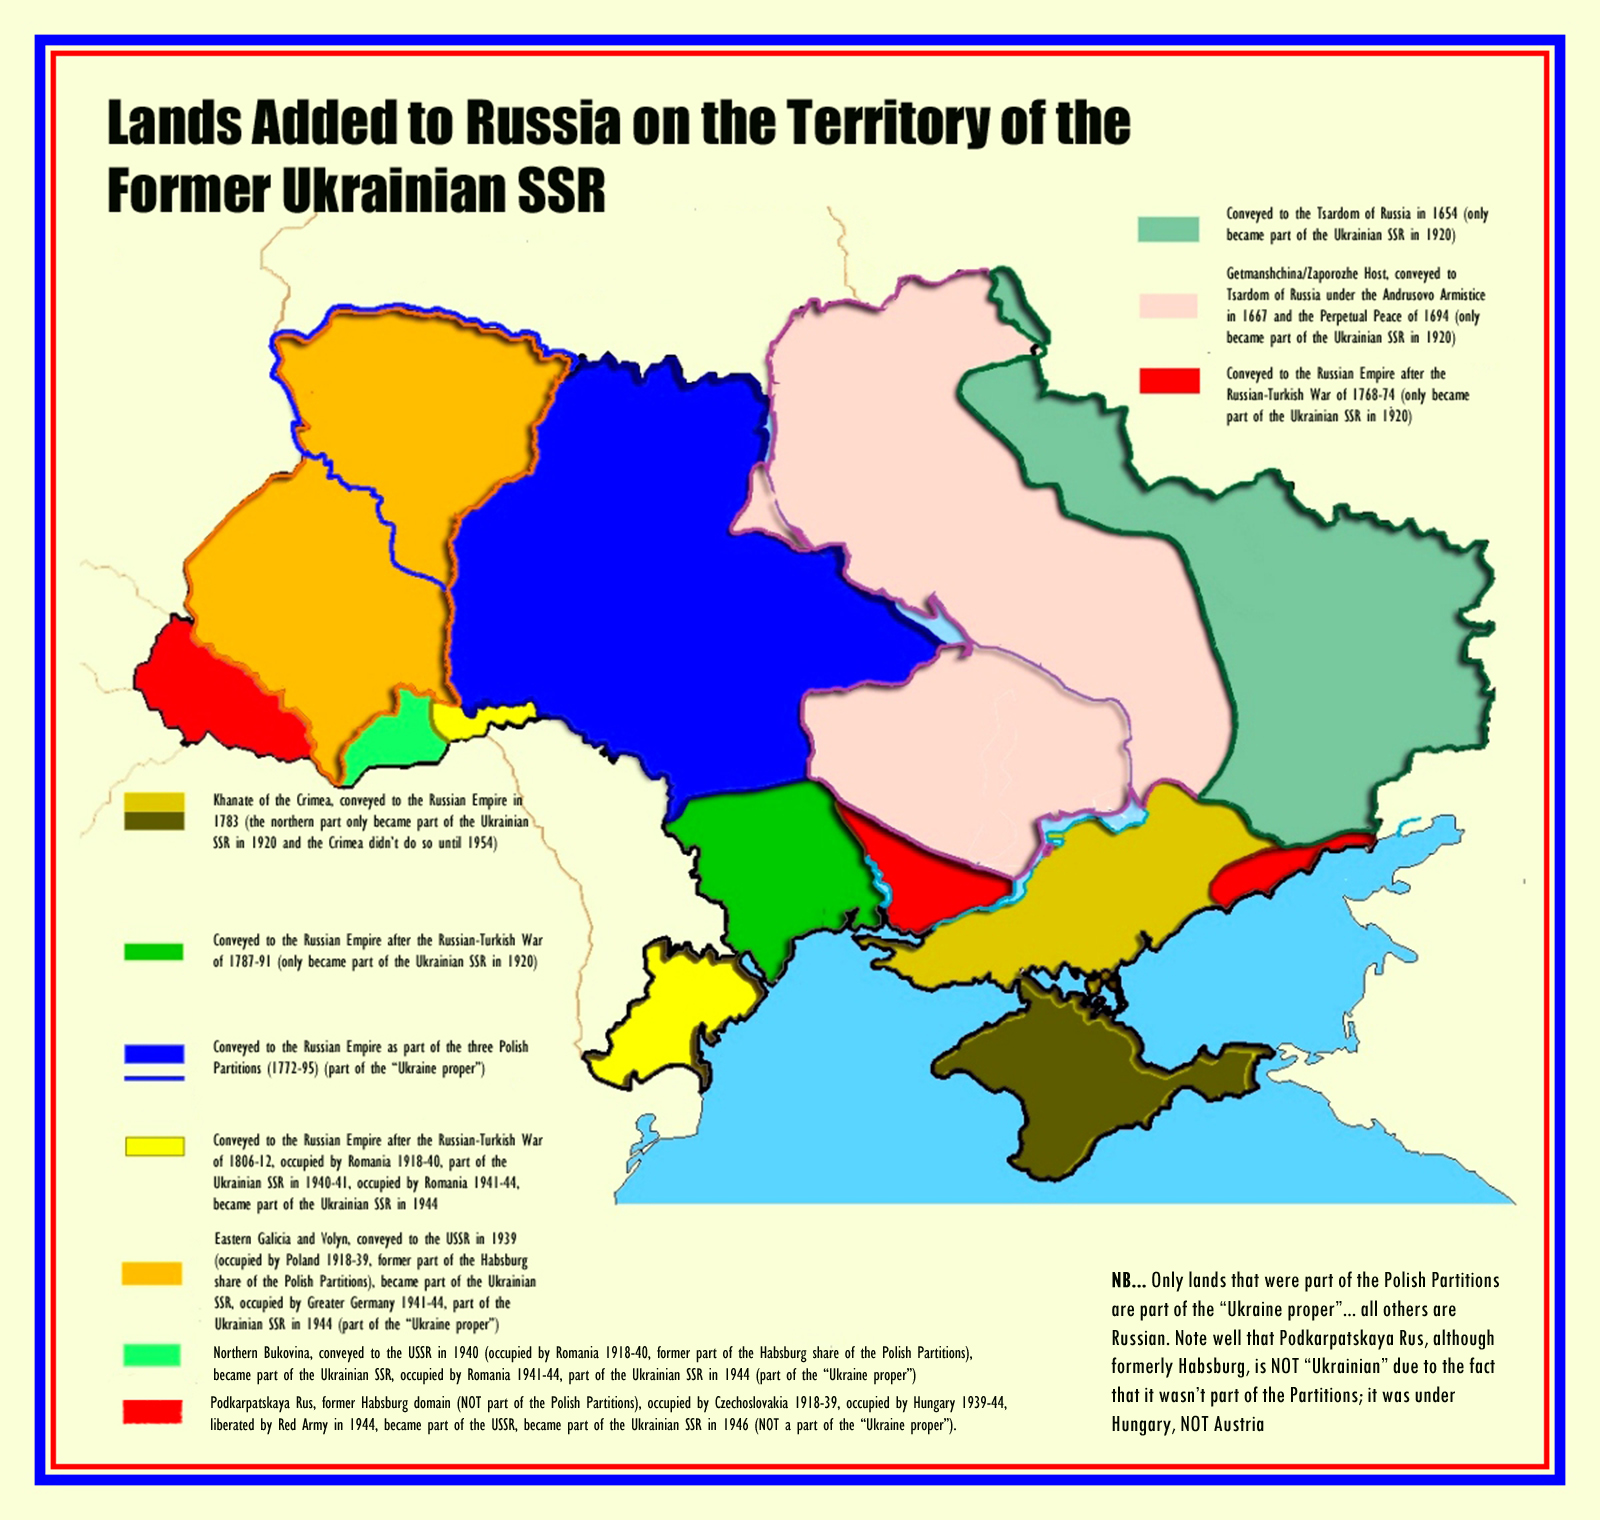 00 Lands Added to Russia on the Territory of the Former Ukrainian SSR. 21.08.14